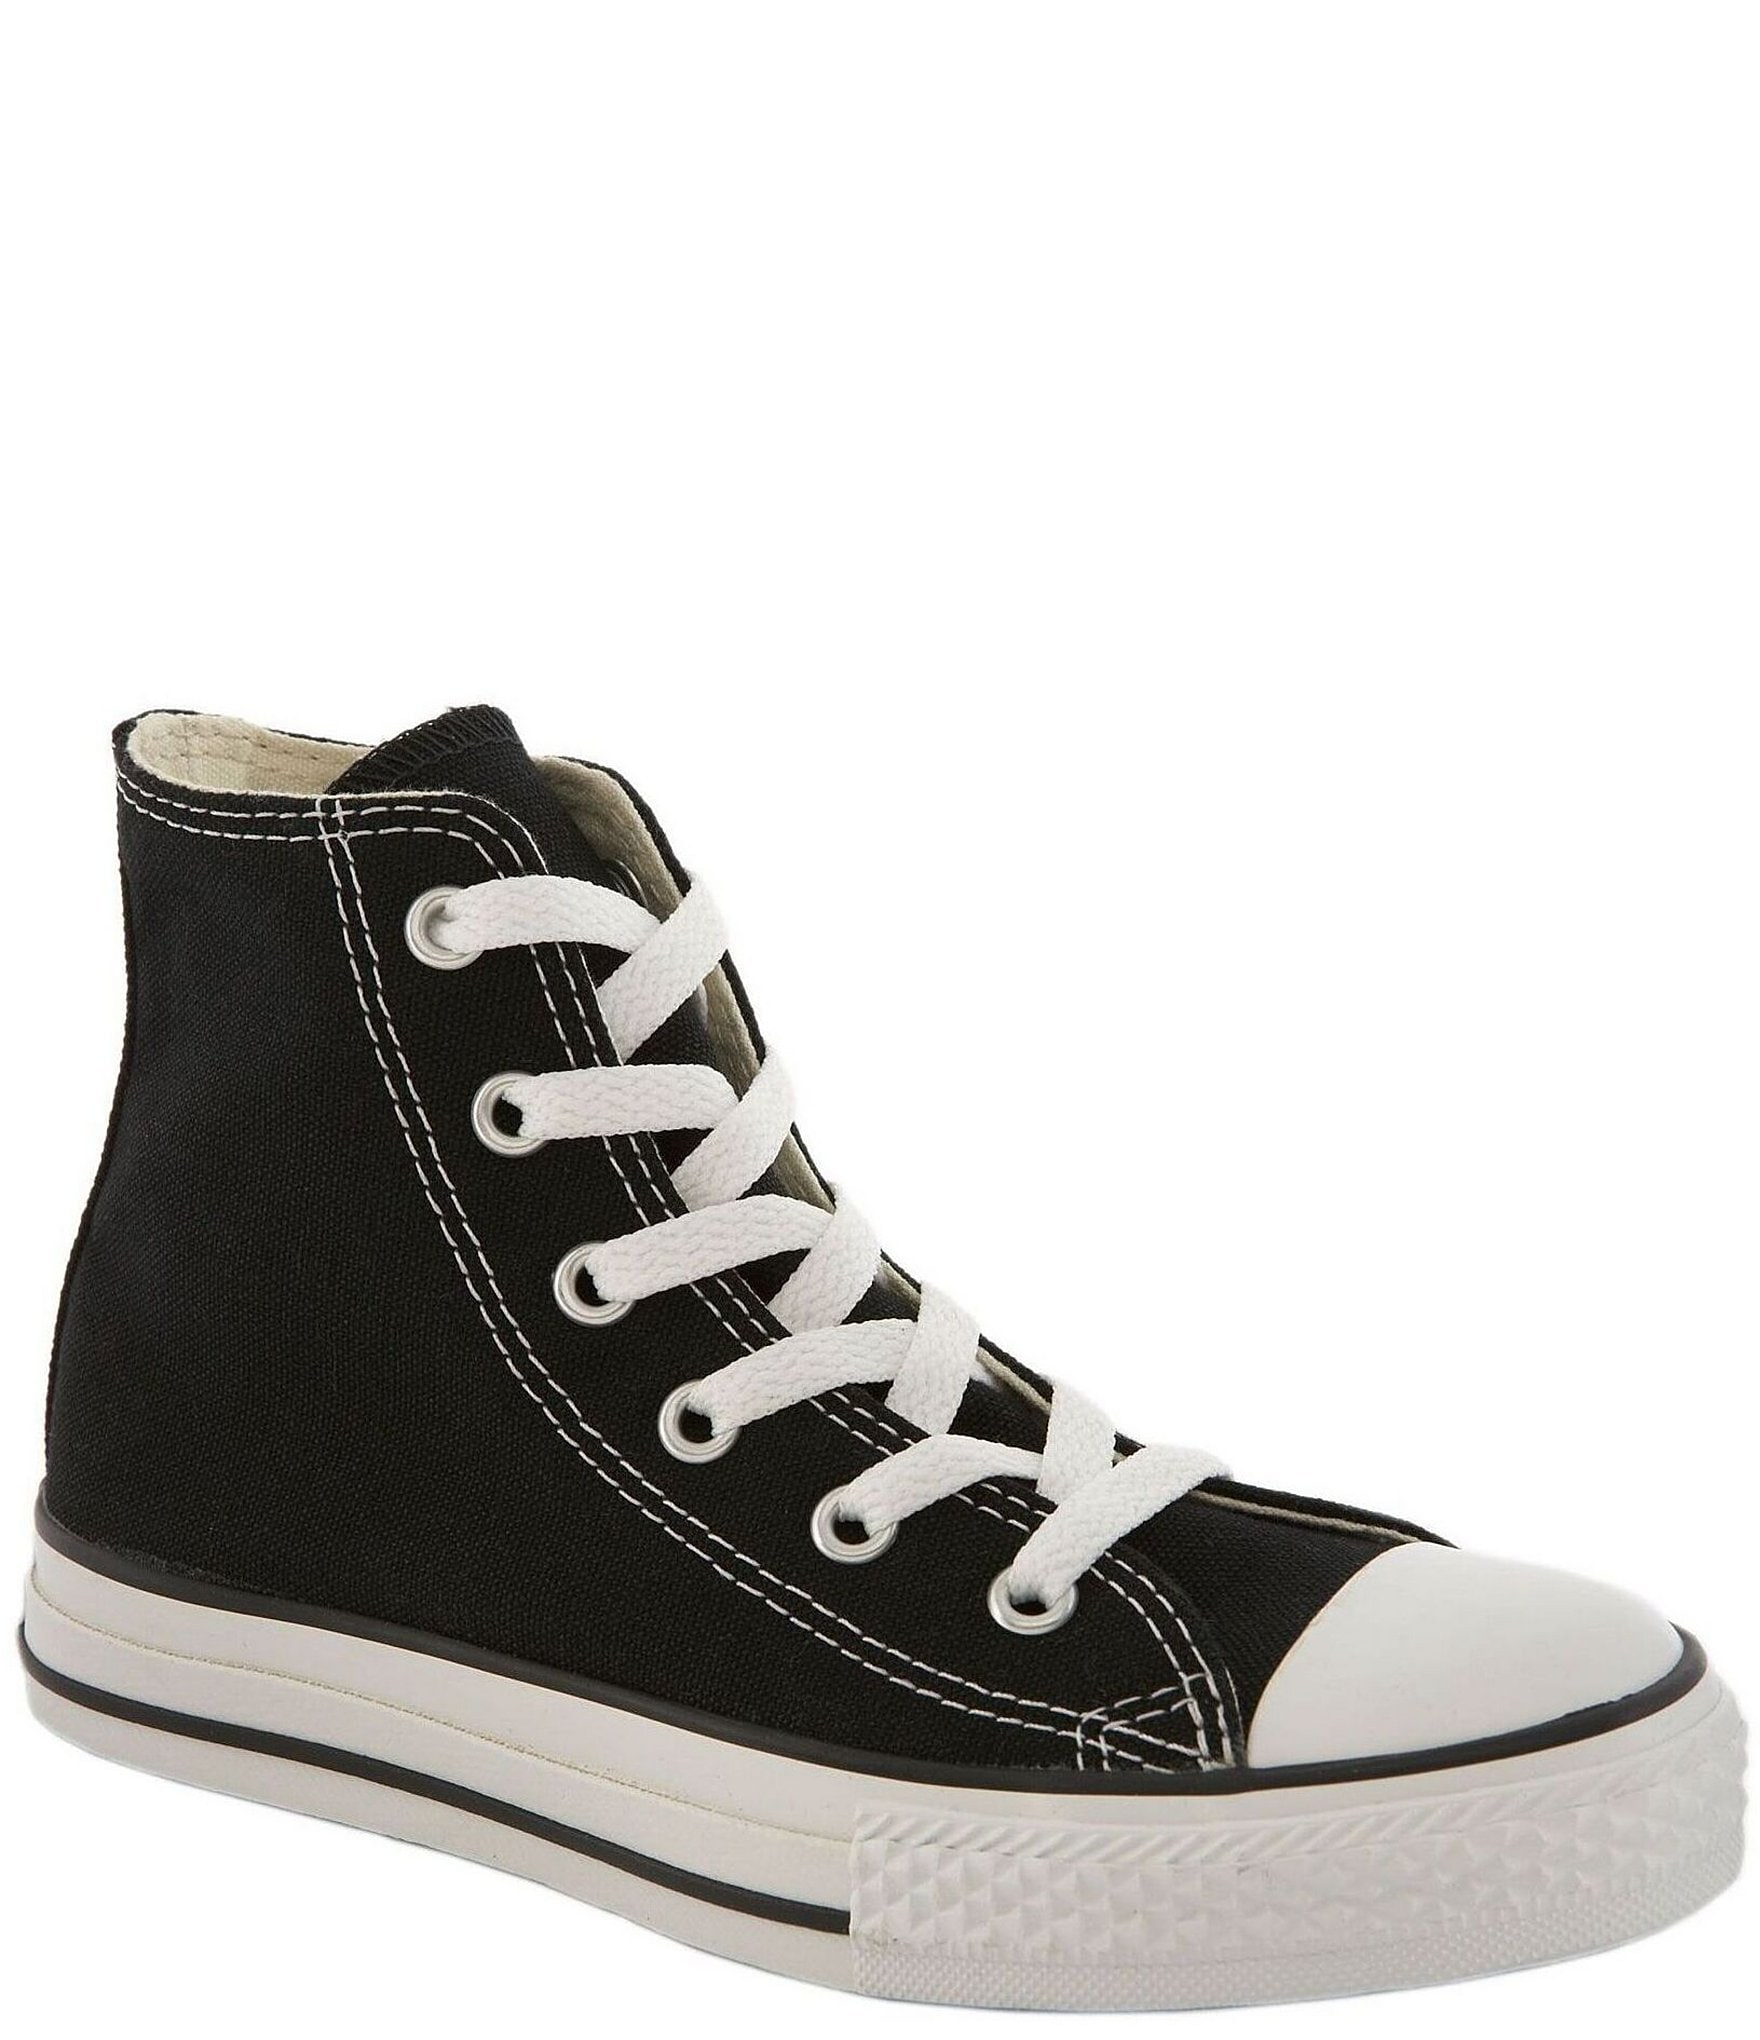 Converse Kids' Chuck Taylor® All Star® Hi Top Sneakers | Dillard's